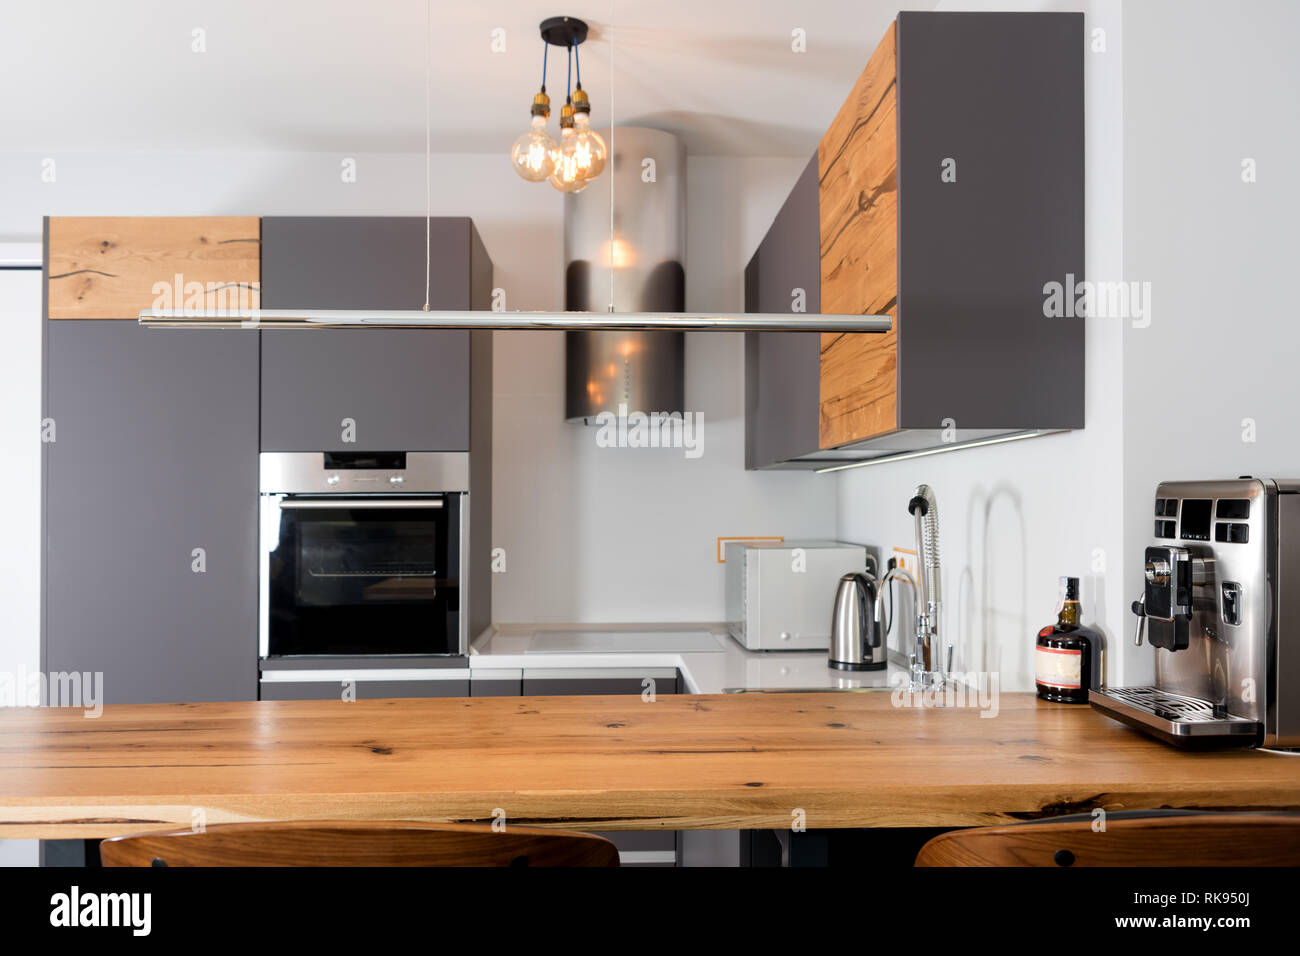 Modern Kitchen Interior With Lights On Brown Wooden Table